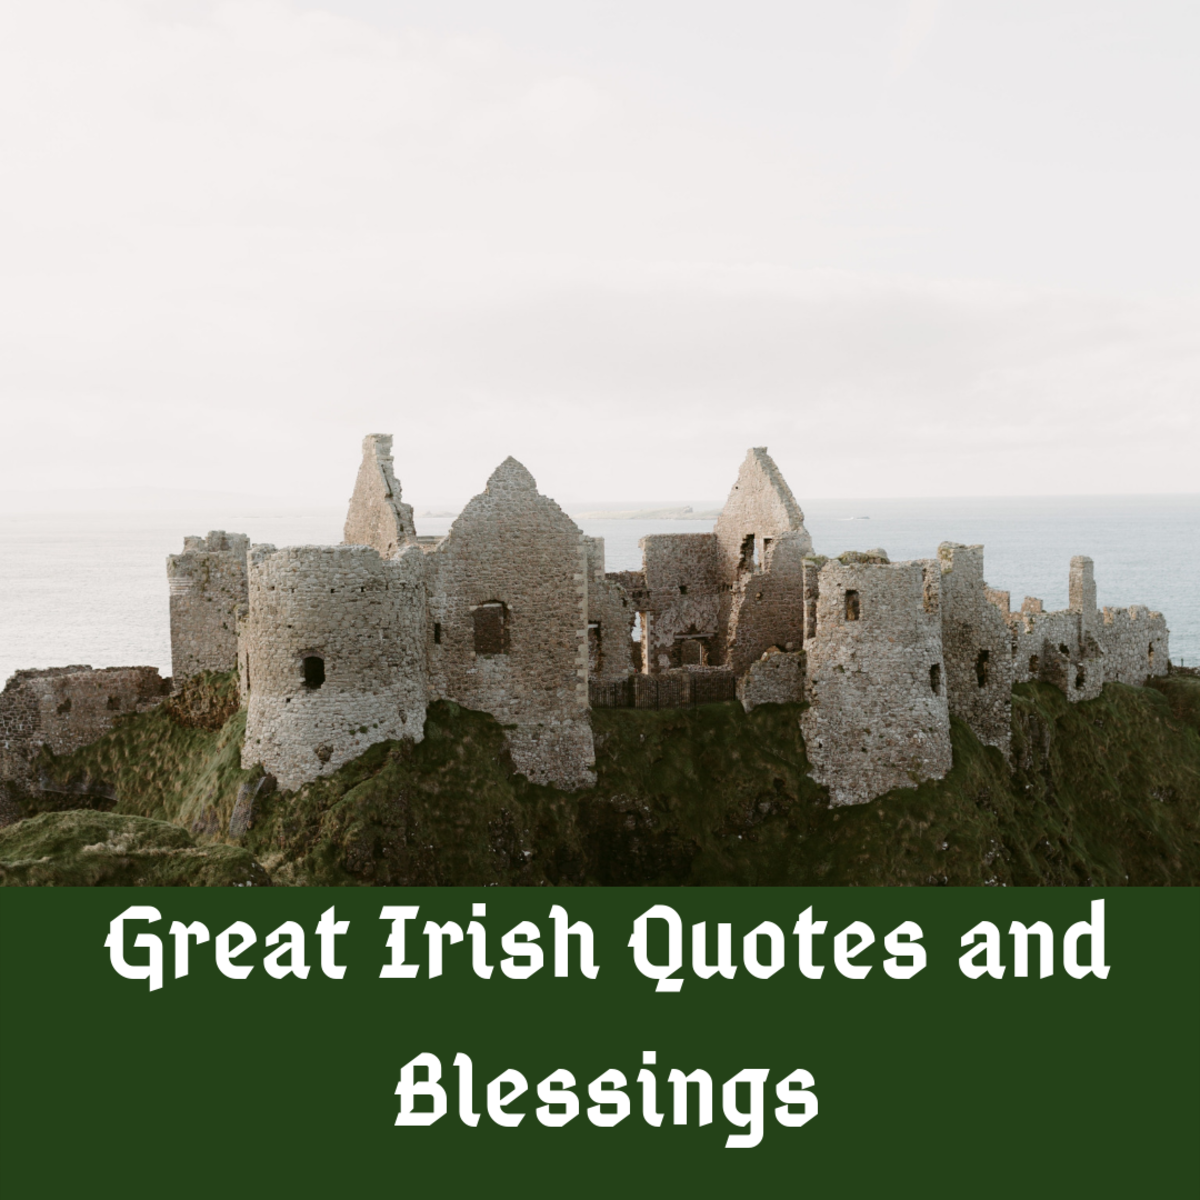 These Irish quotes are great for many occasions.